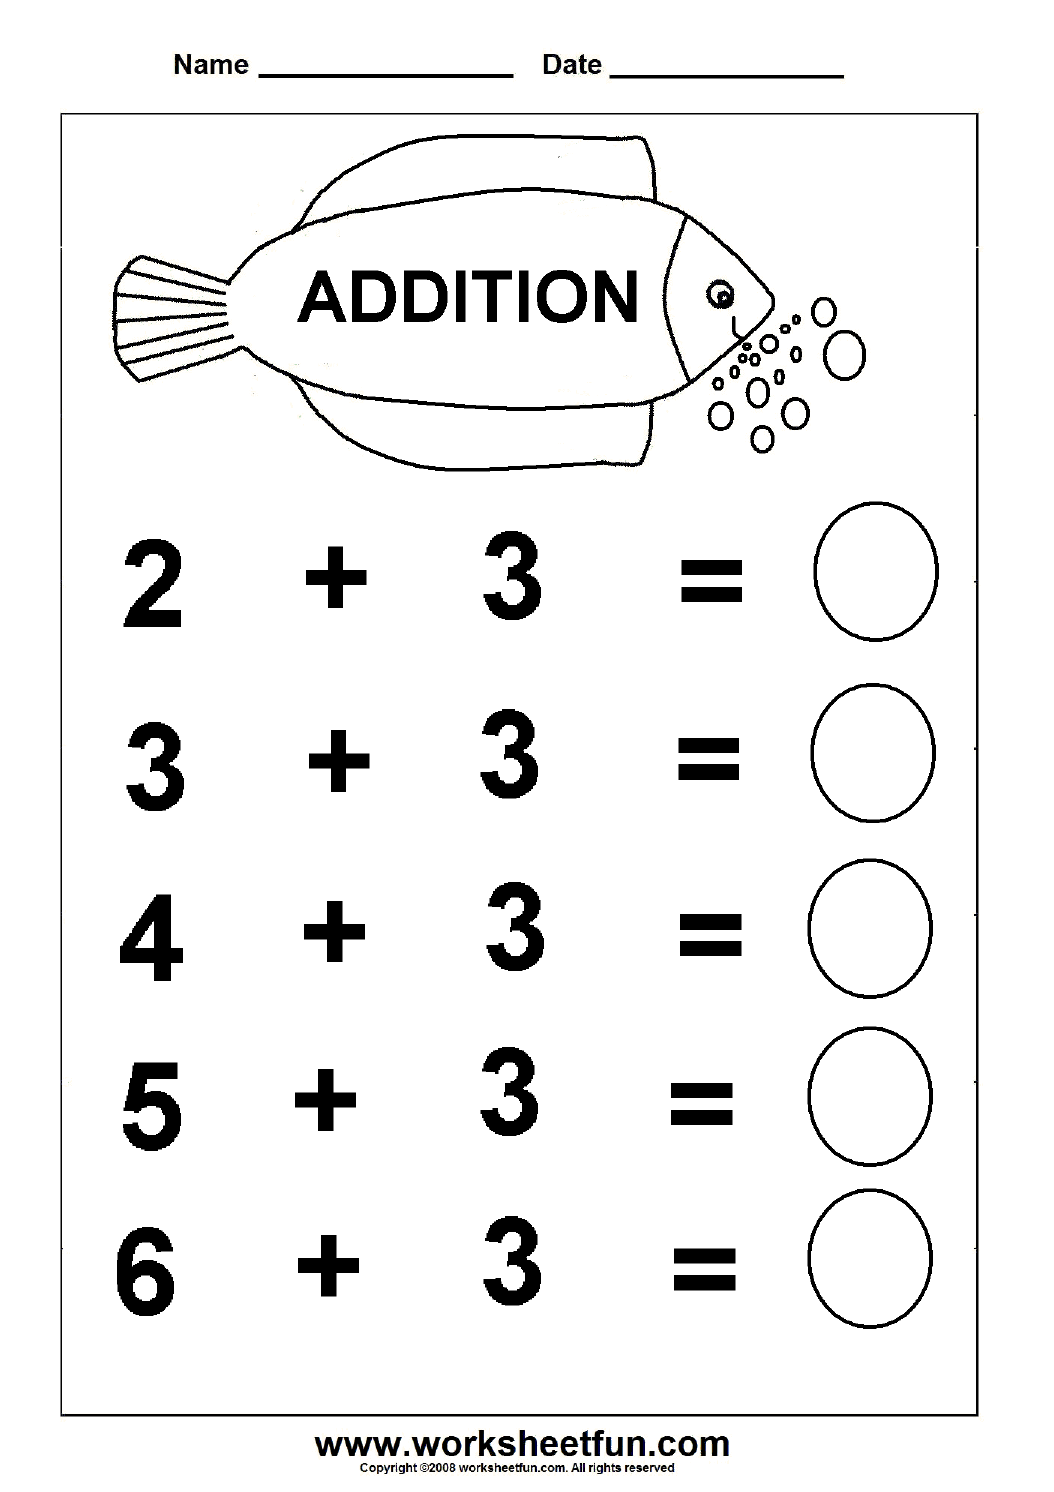 worksheet Single Addition Worksheets addition basic facts free printable worksheets beginner 6 kindergarten worksheets